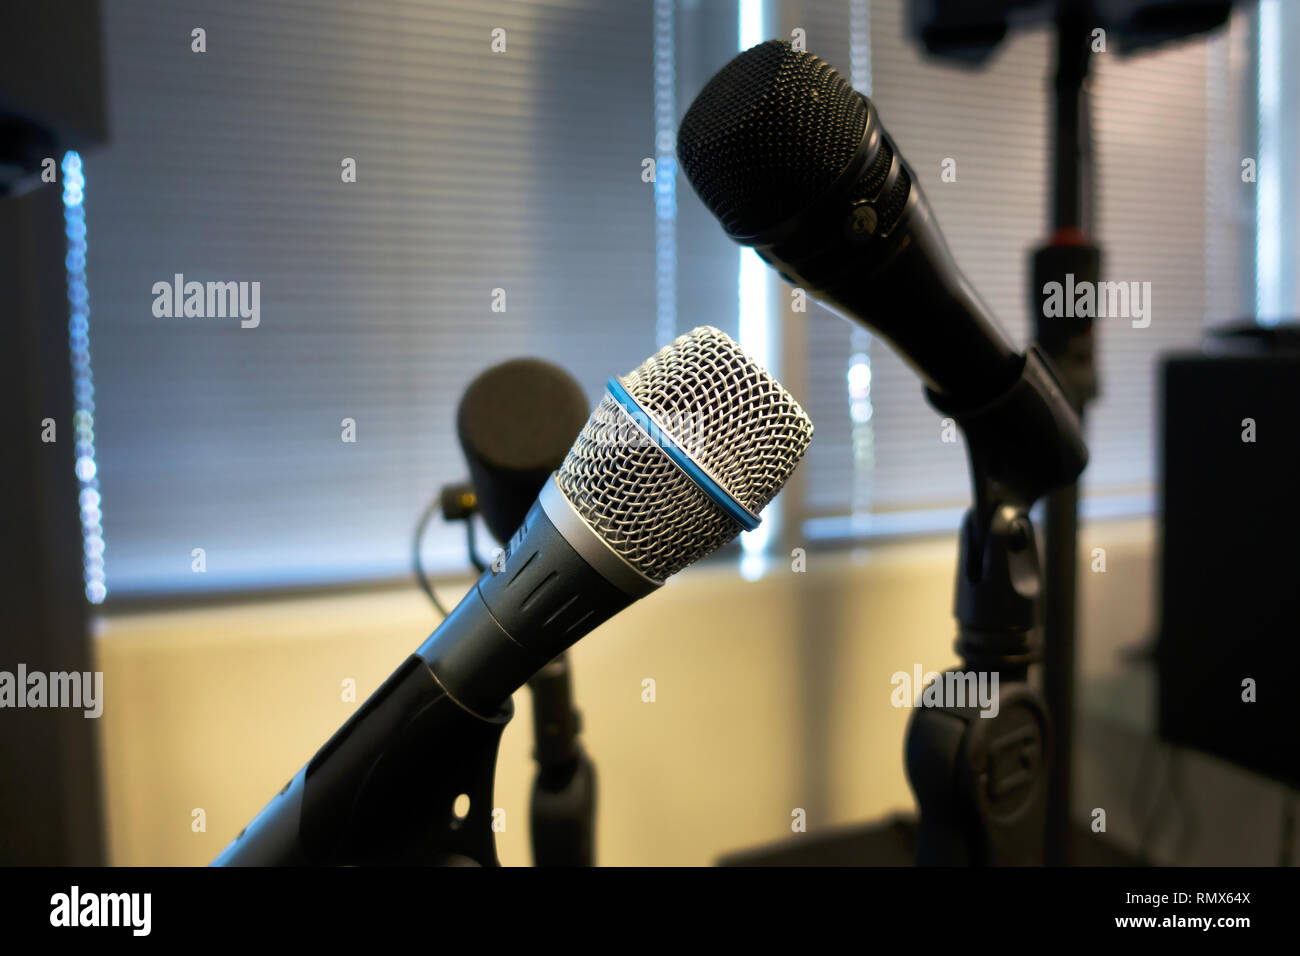 Microphones on stands in a rehearsal room - Stock Image